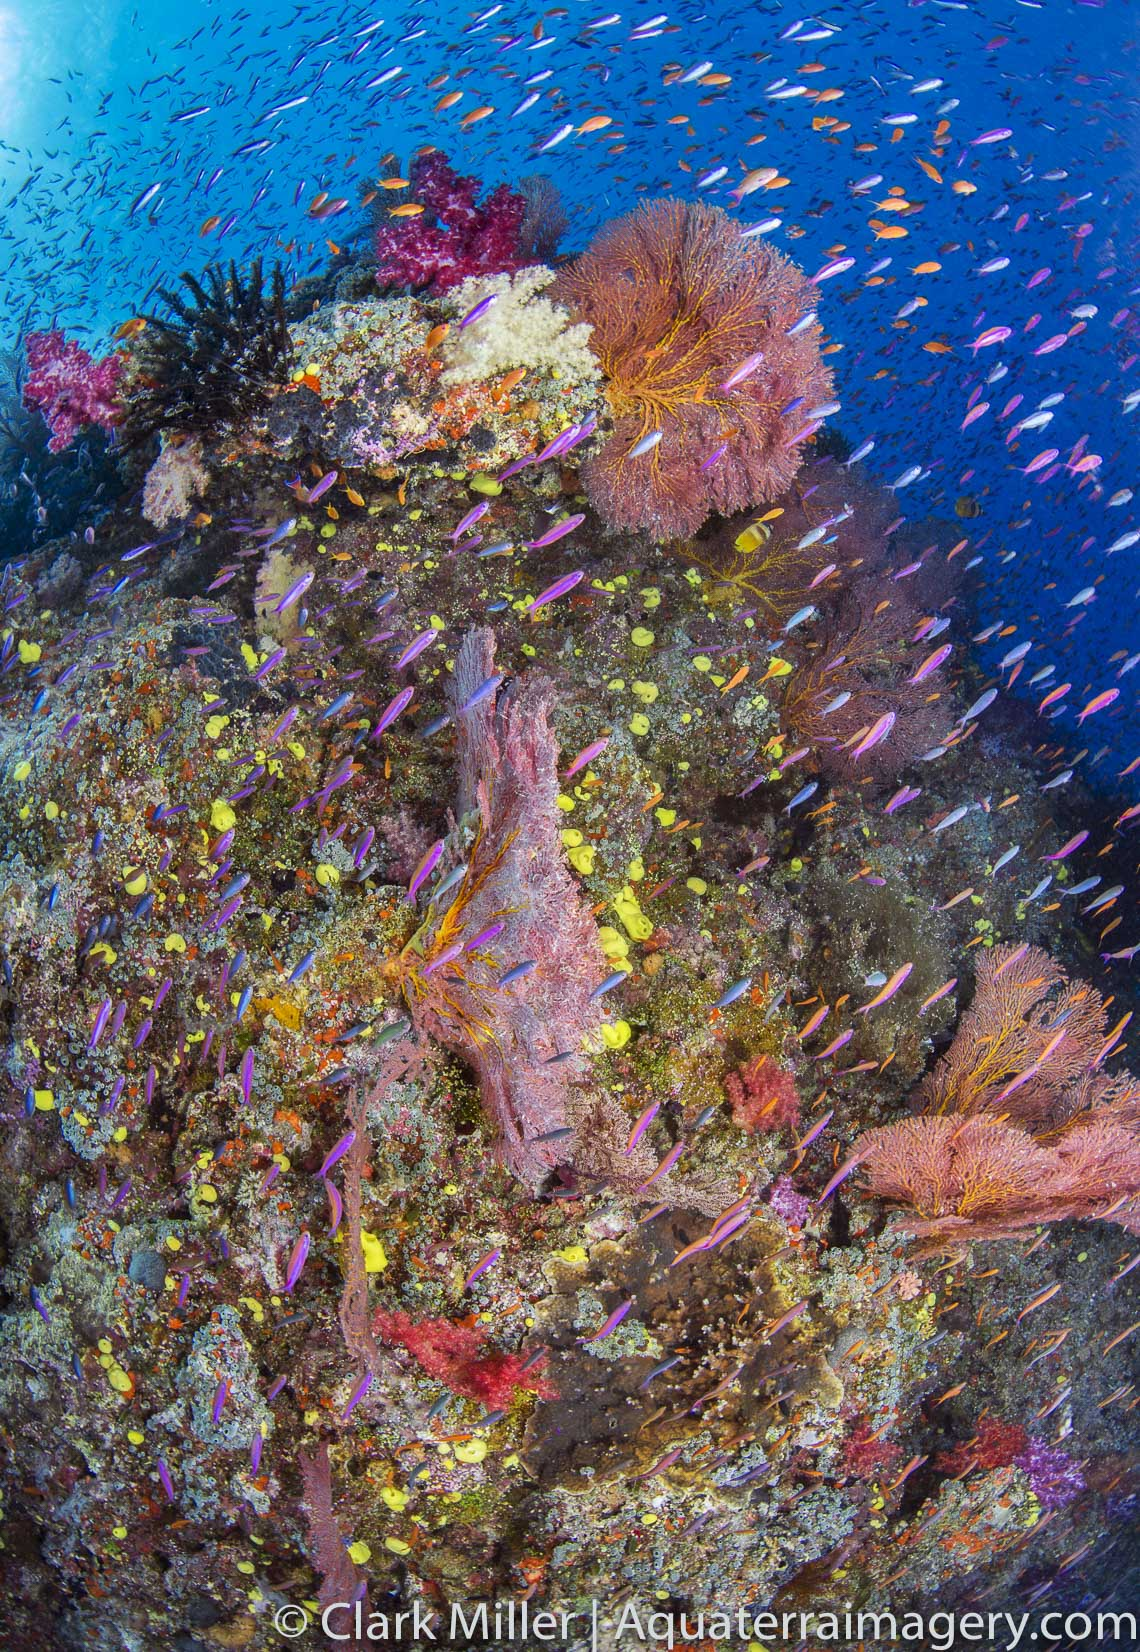 Nearly 50% of all coral reefs on earth are either dead, declining or threatened.  These coral reefs may be some of the last images before the devastating Catagory 5 Cyclone Winstone that hit Fiji in February 2016.